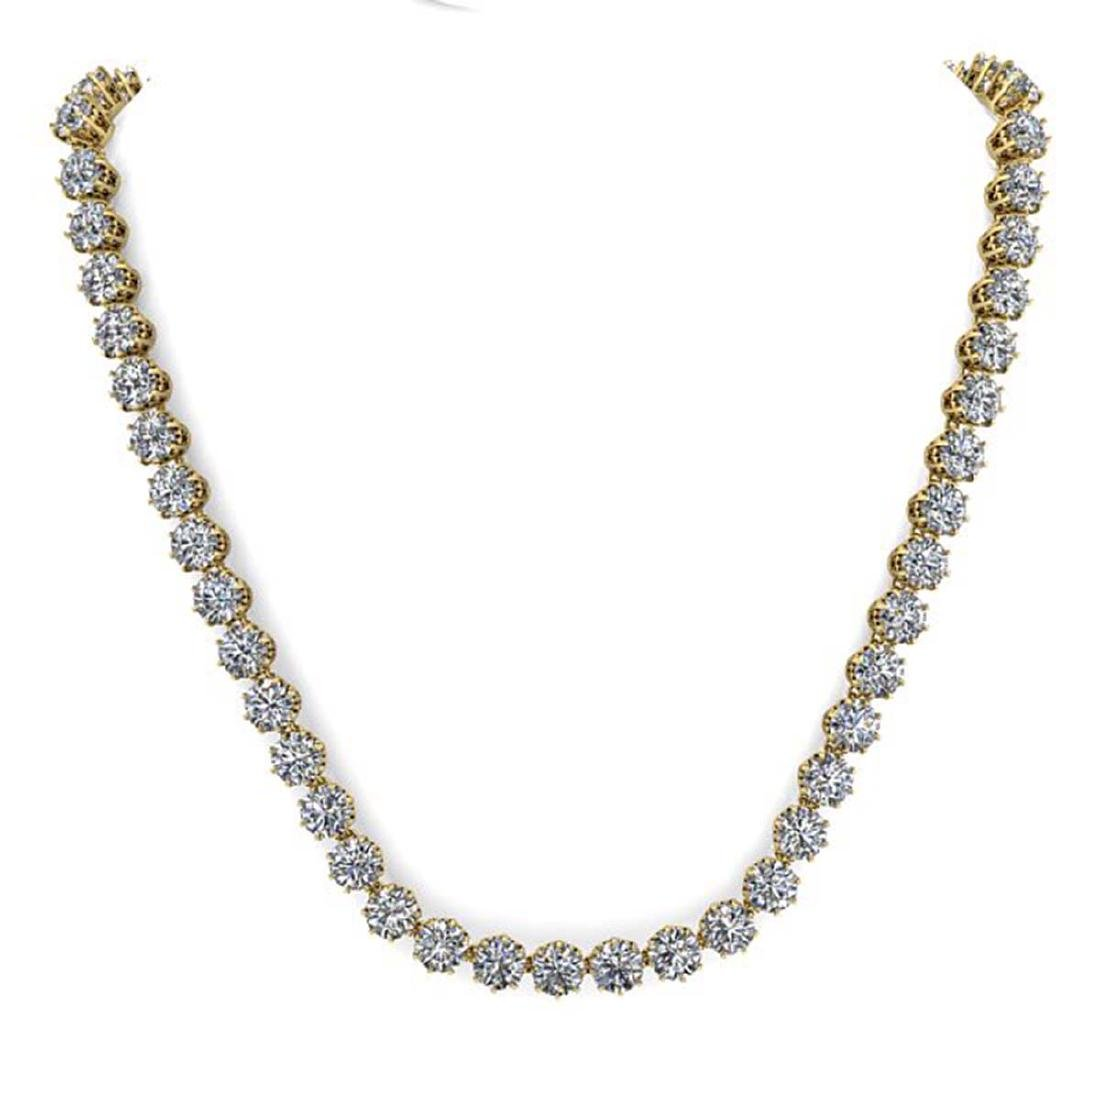 30 ctw SI Diamond Necklace 14K Yellow Gold - - 3